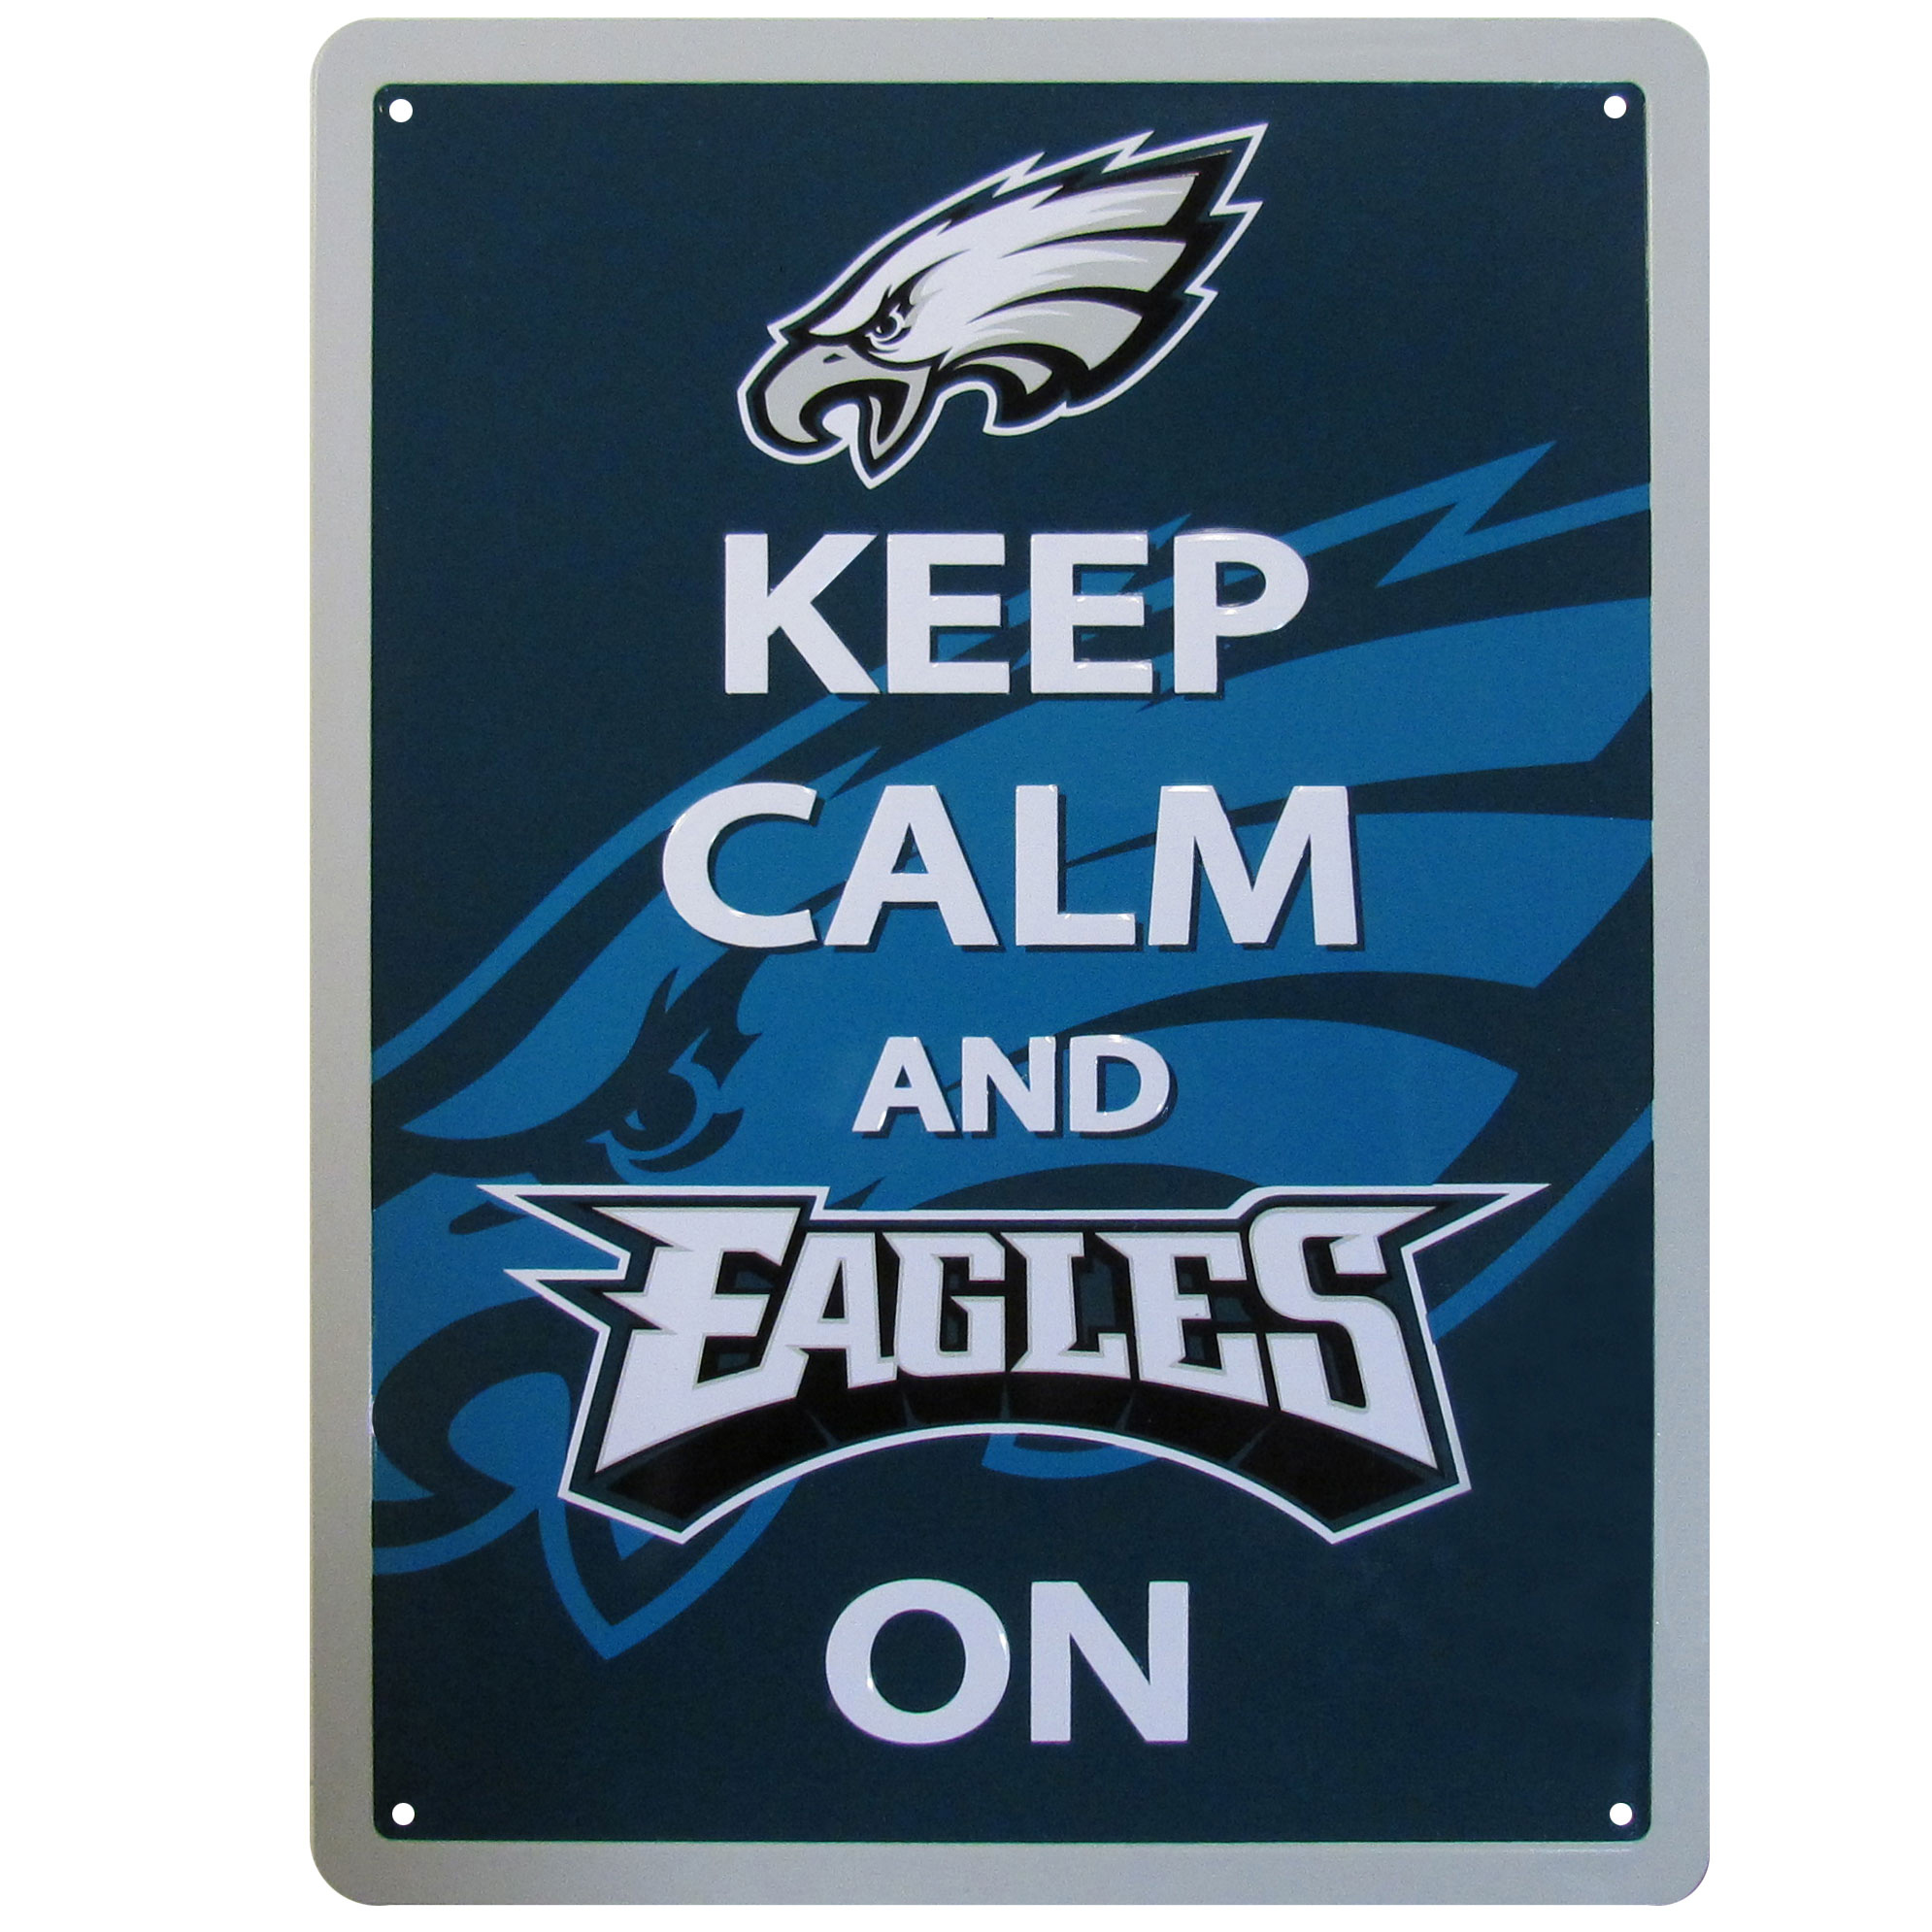 Philadelphia Eagles Keep Calm Sign - One of the most enduring motivational signs of all time is now available with your beloved Philadelphia Eagles logo. The 9 inch by 12 inch sign is a must have for any fan cave!